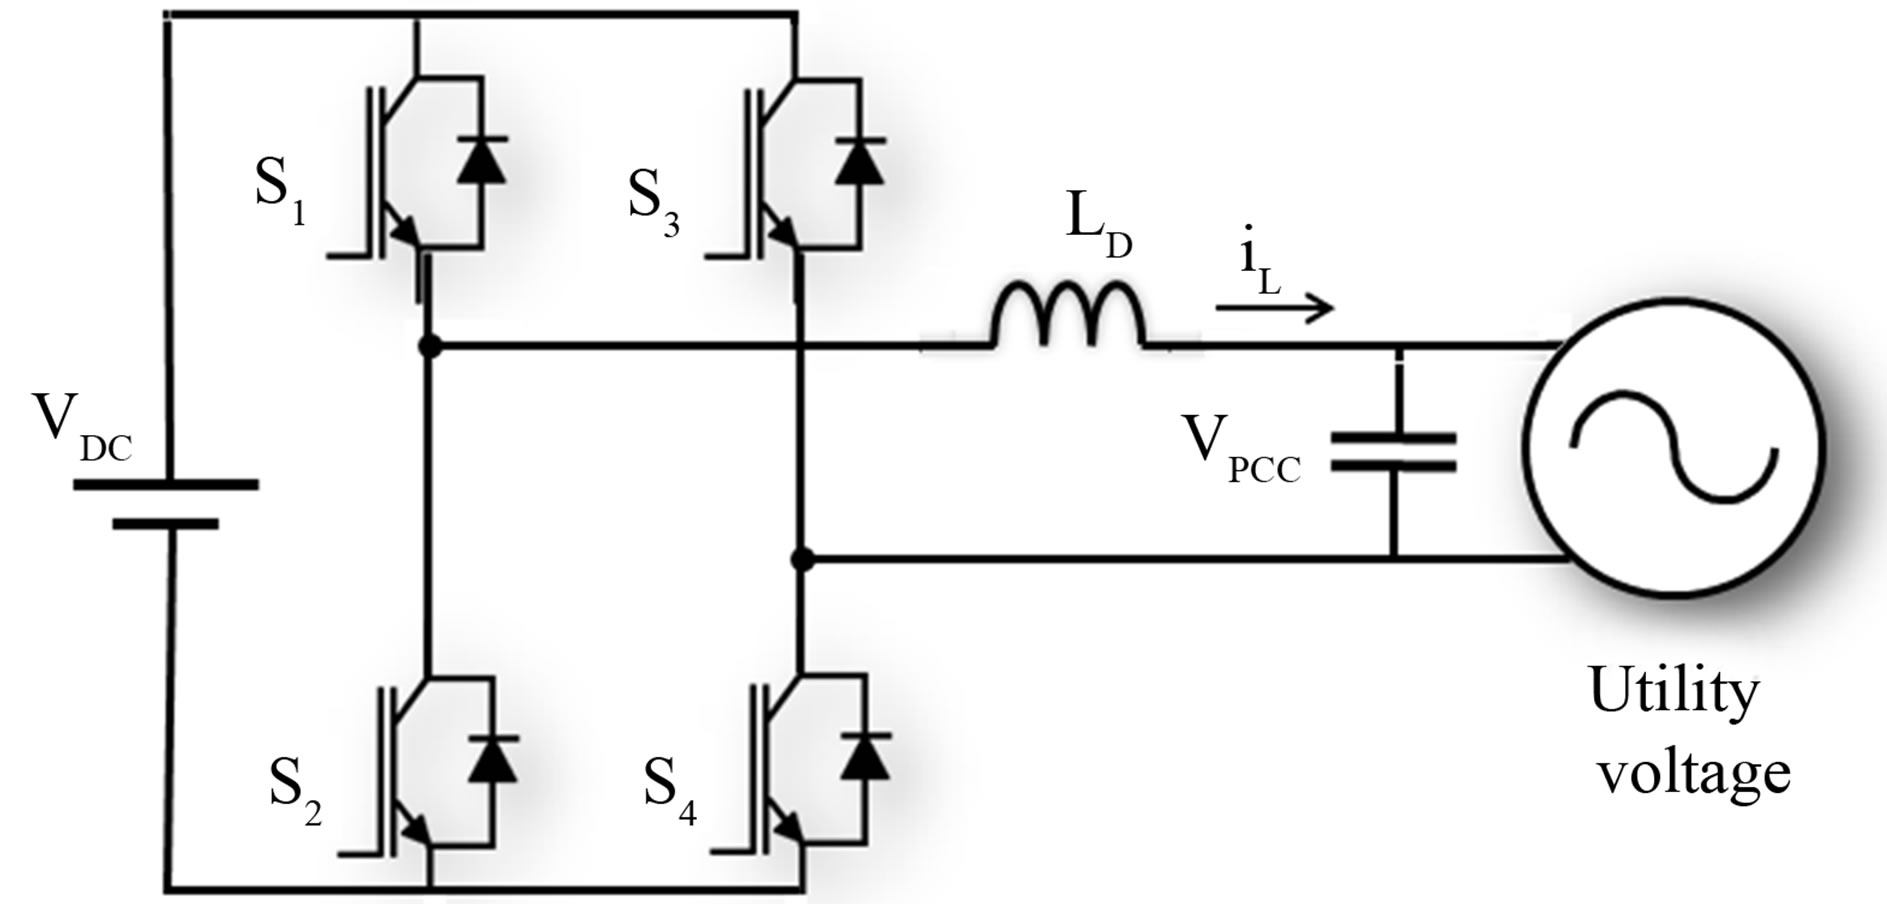 Fpga Implementation Of Predictive Hysteresis Current Control For Following Is The Schematic Voltage Controlled Pwm Generator Grid Connected Vsi